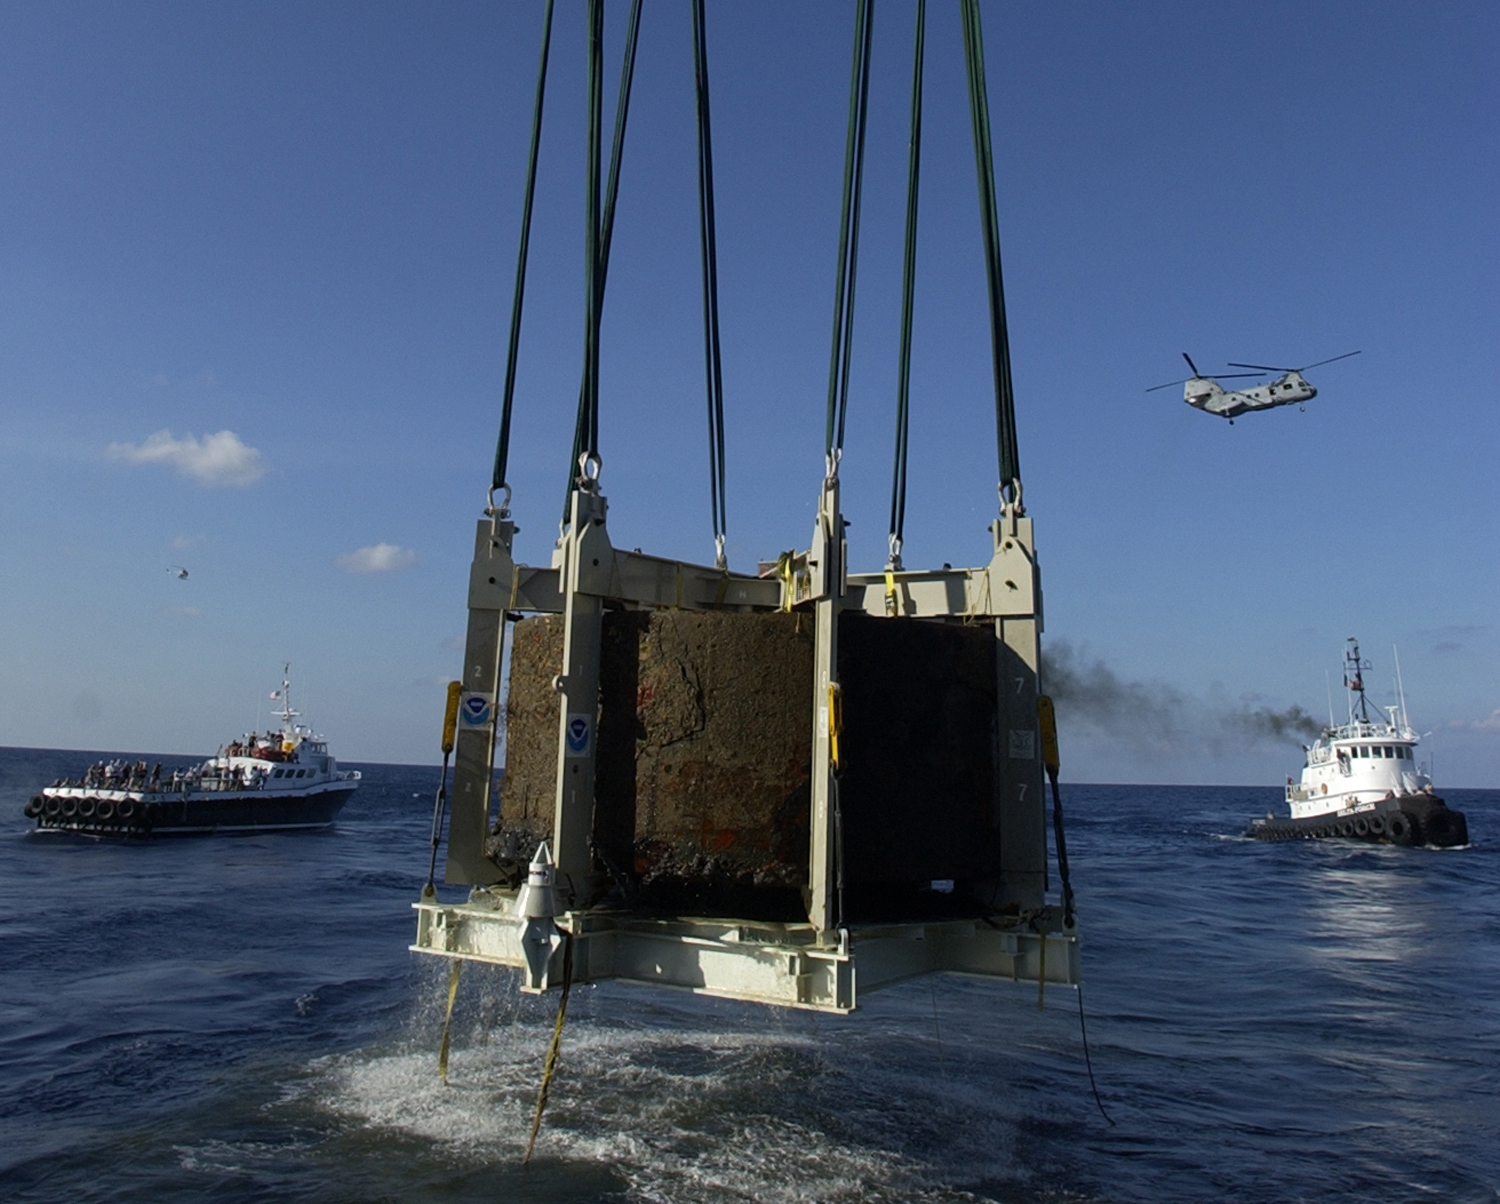 The Monitor's turret recovered on August 5, 2002, courtesy of NOAA